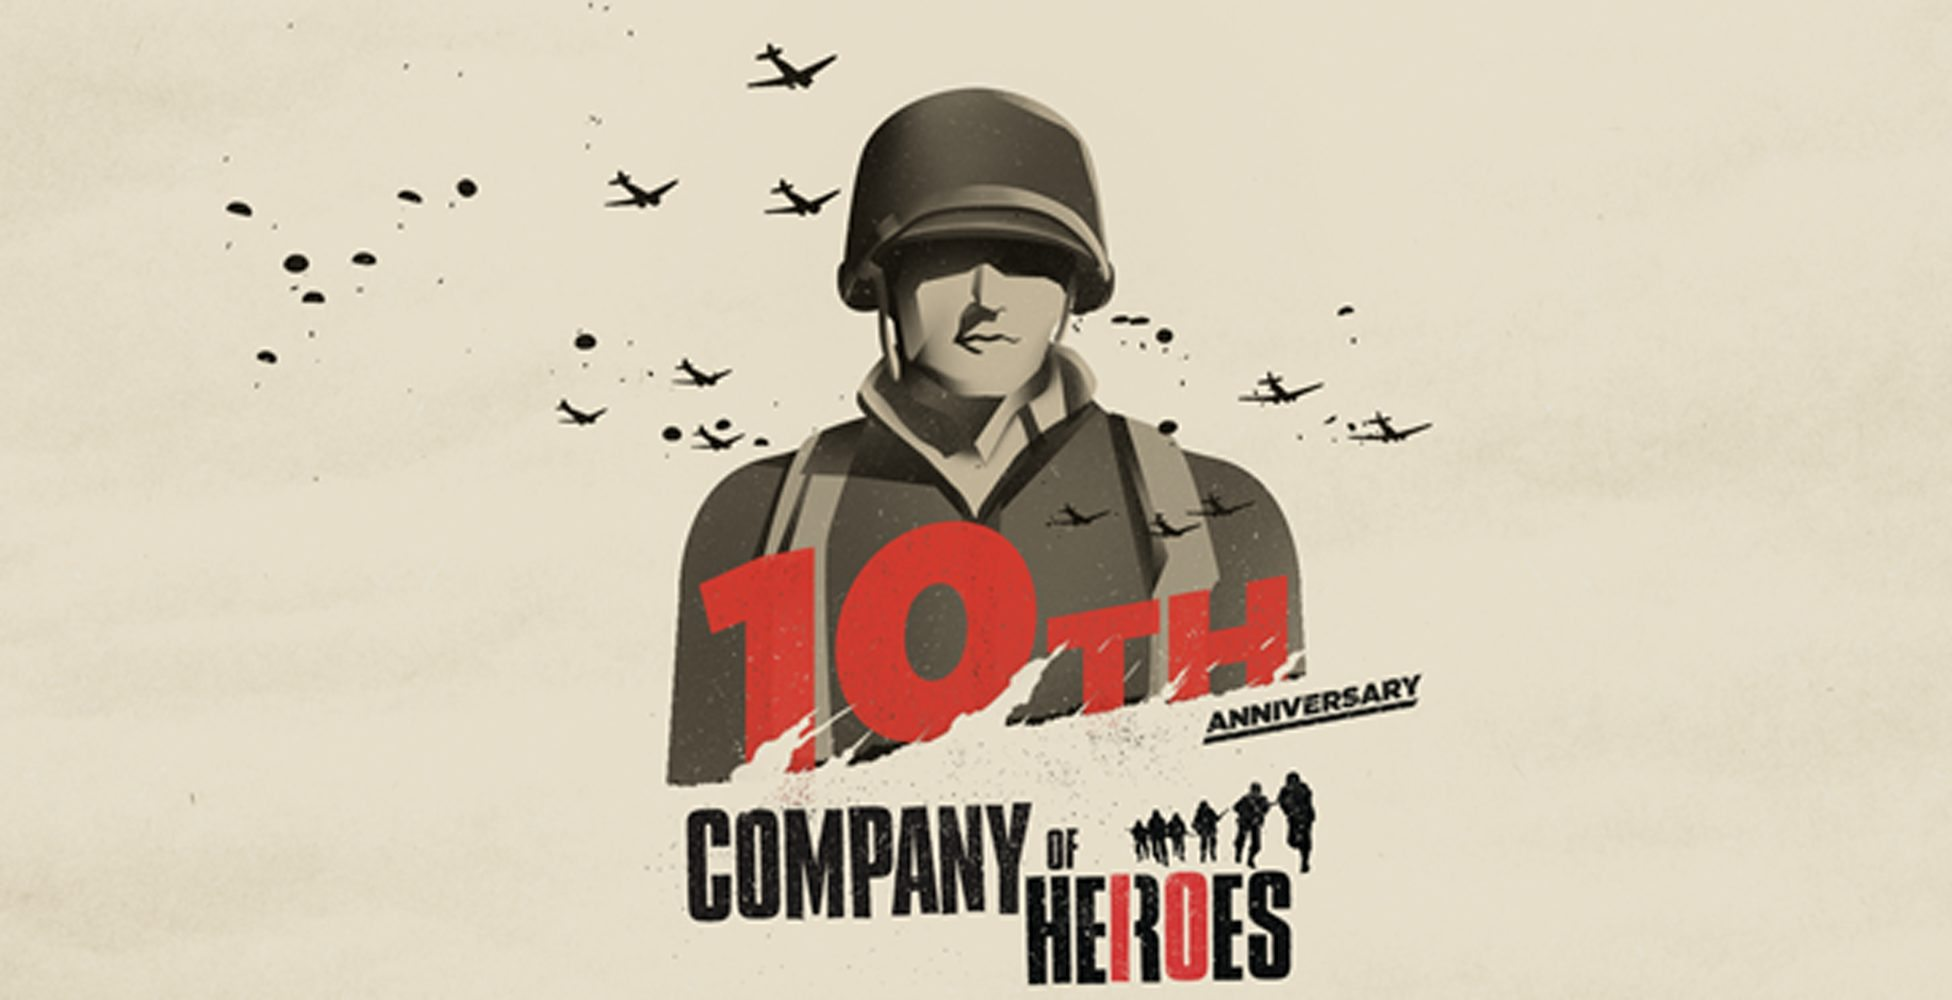 COMPANY OF HEROES by SEGA and Relic Celebrates 10 Years